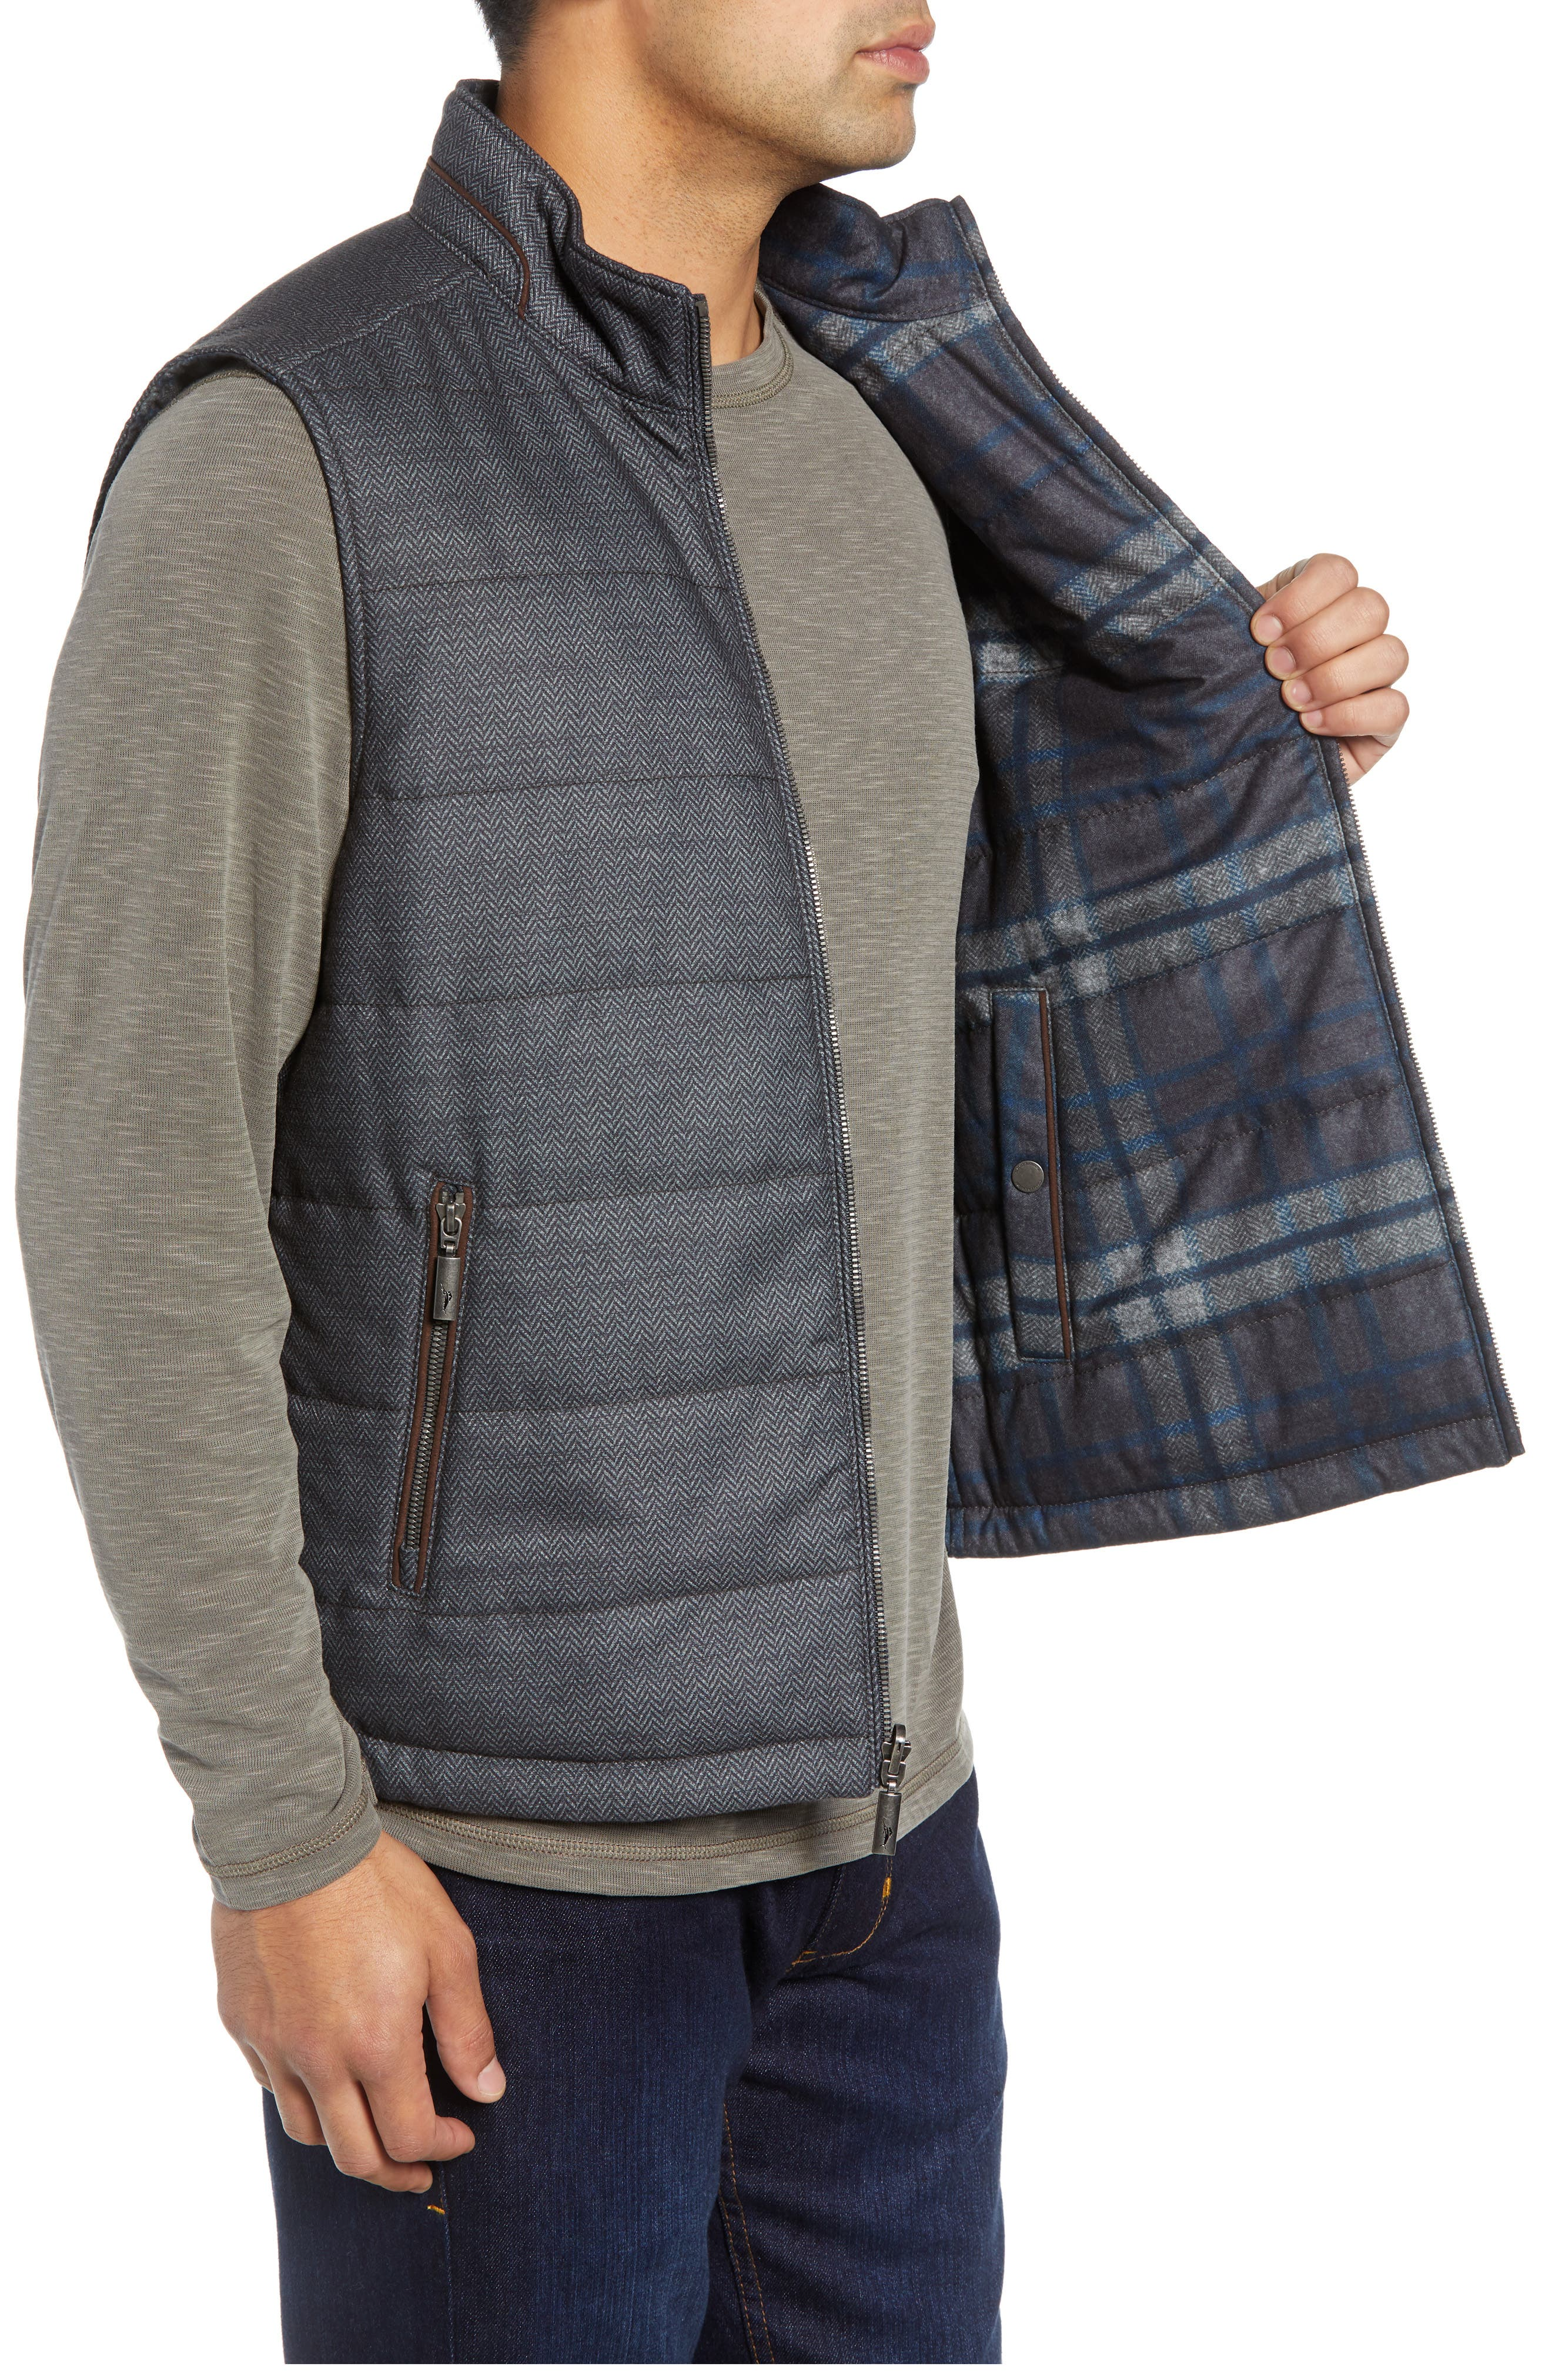 Dublin Duo Reversible Quilted Vest,                             Alternate thumbnail 4, color,                             SHADOW